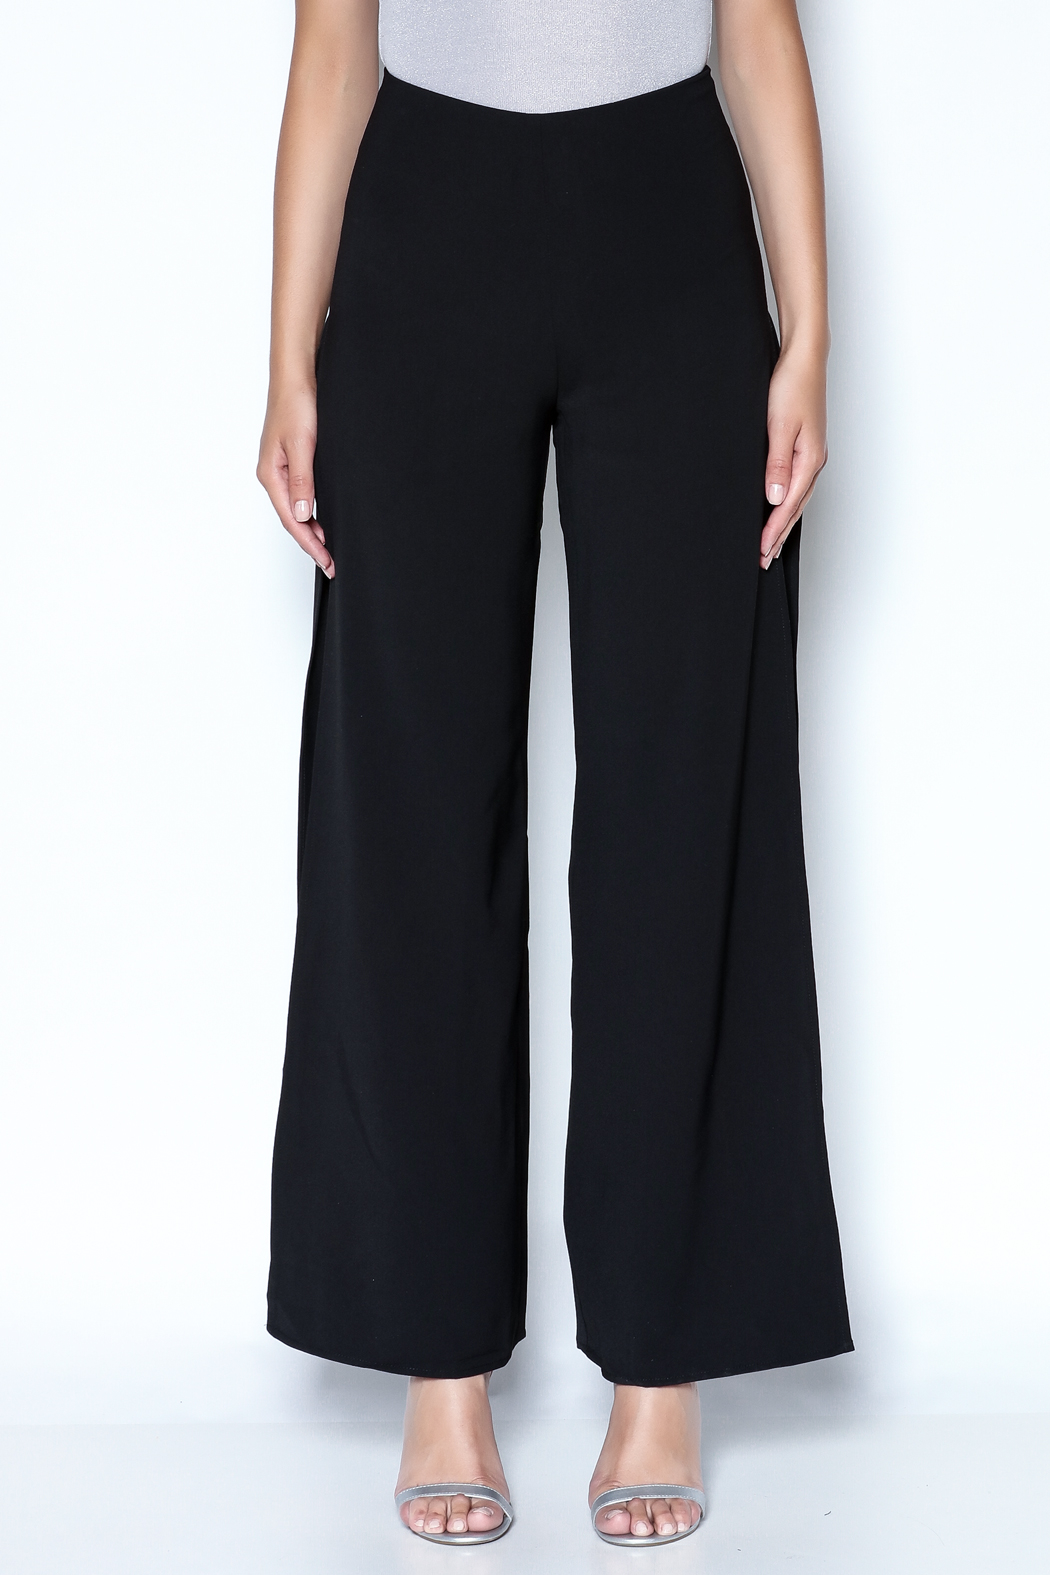 Do-Be Lace Insert Pants - Front Full Image